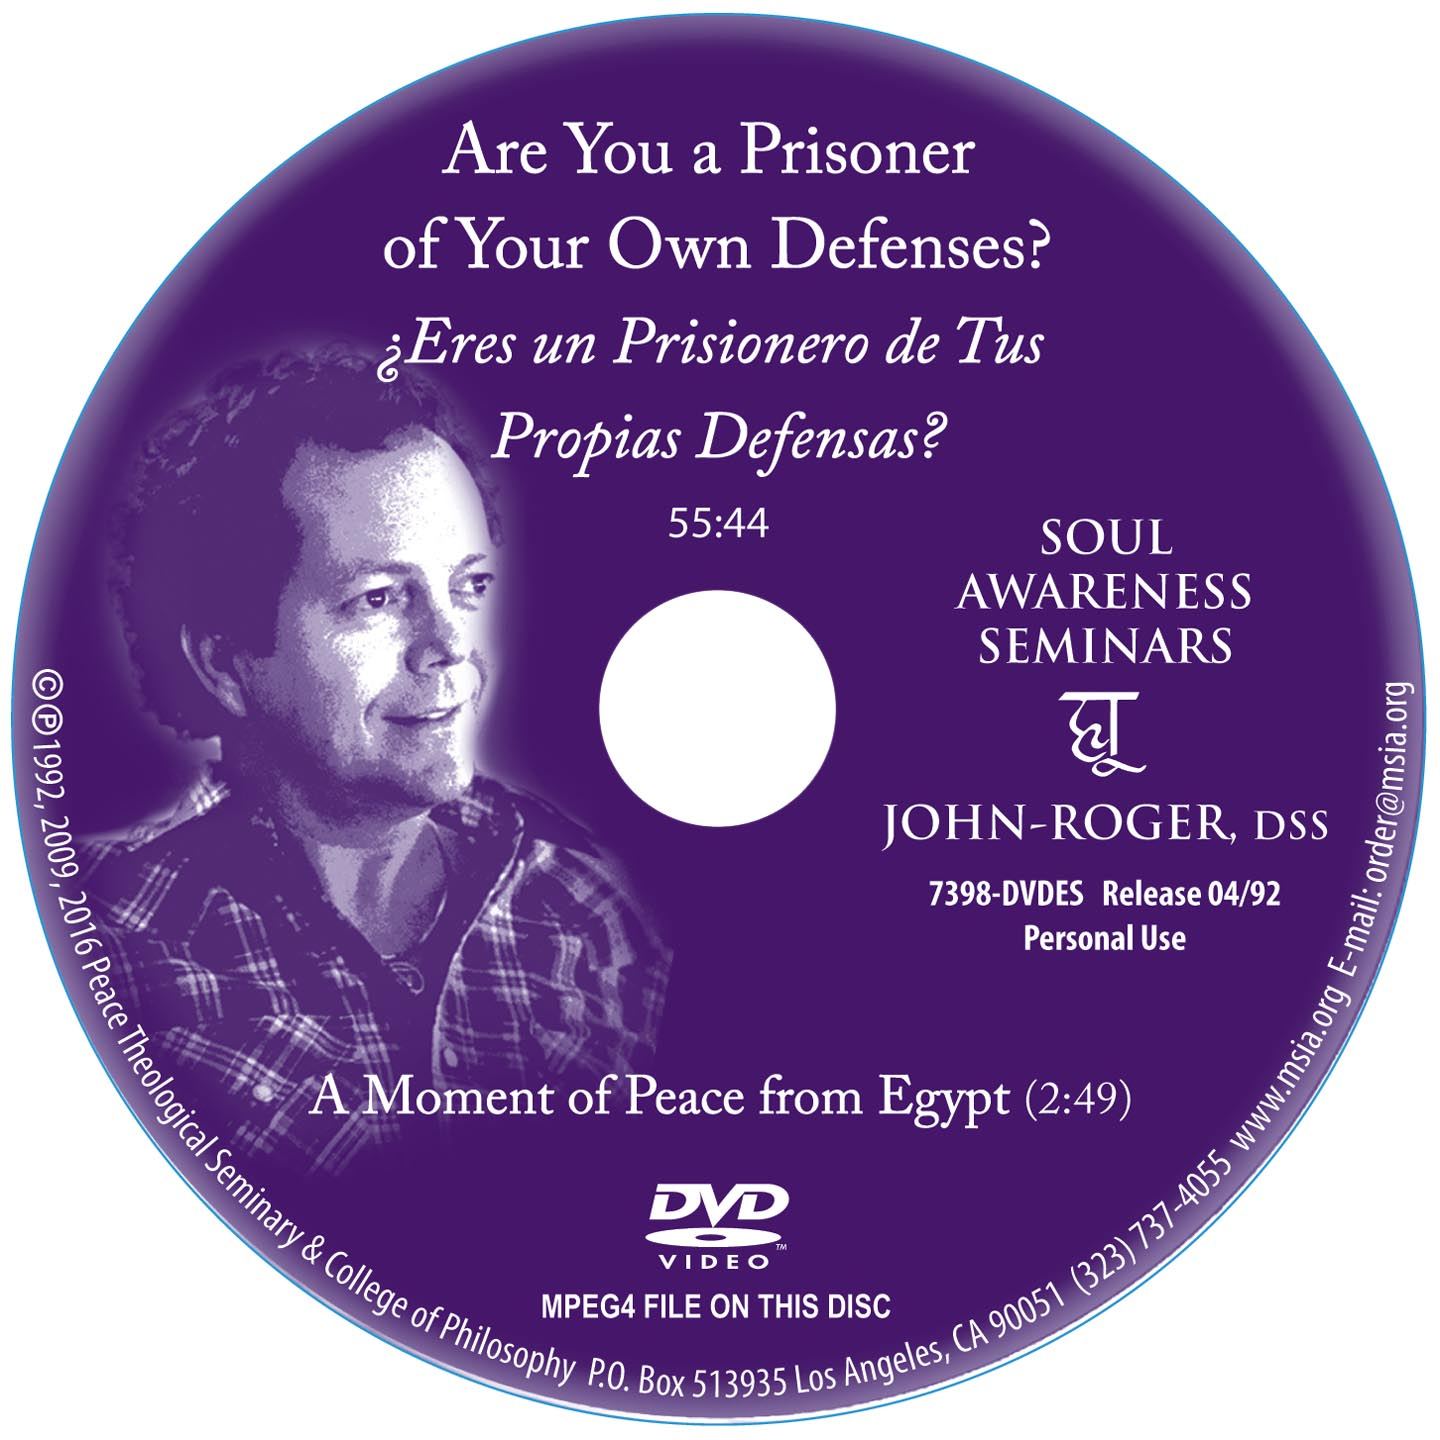 Are You a Prisoner of Your Own Defenses? DVD